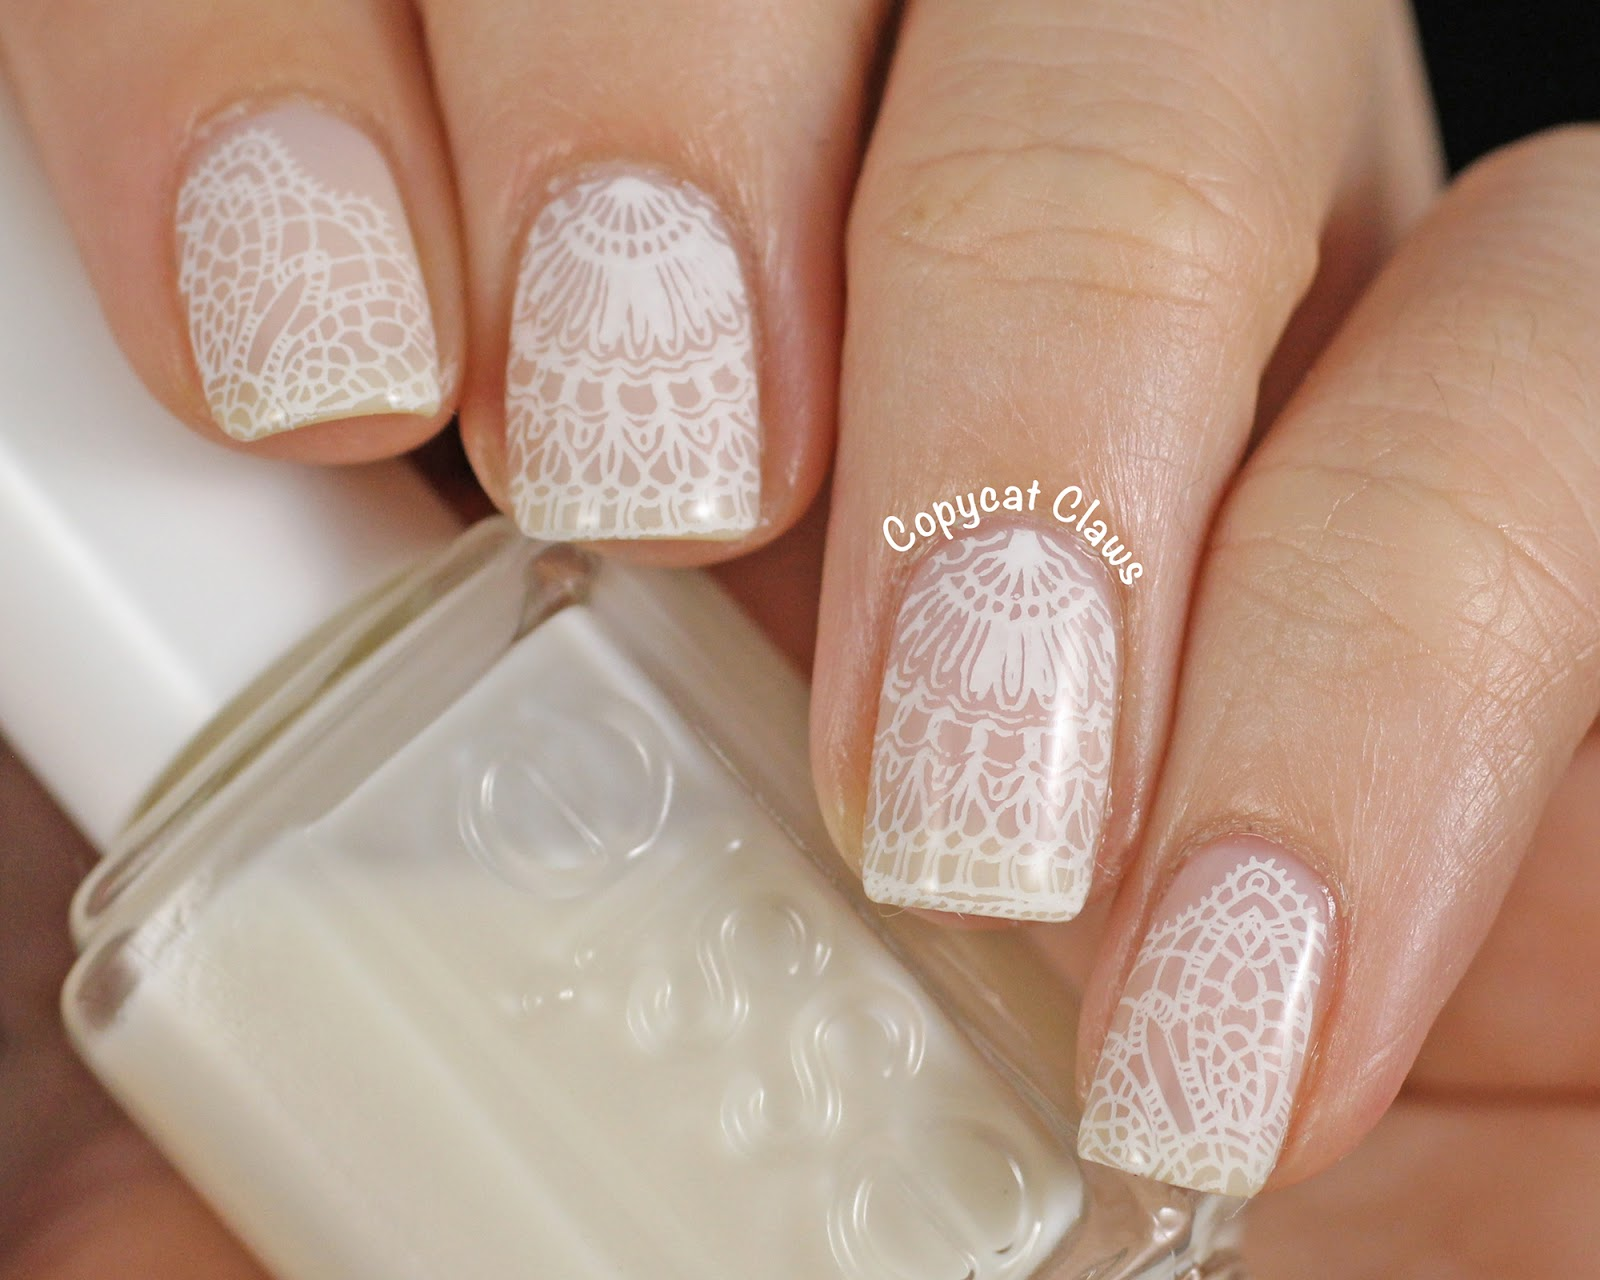 Copycat Claws: Messy Mansion Lace Nail Stamping